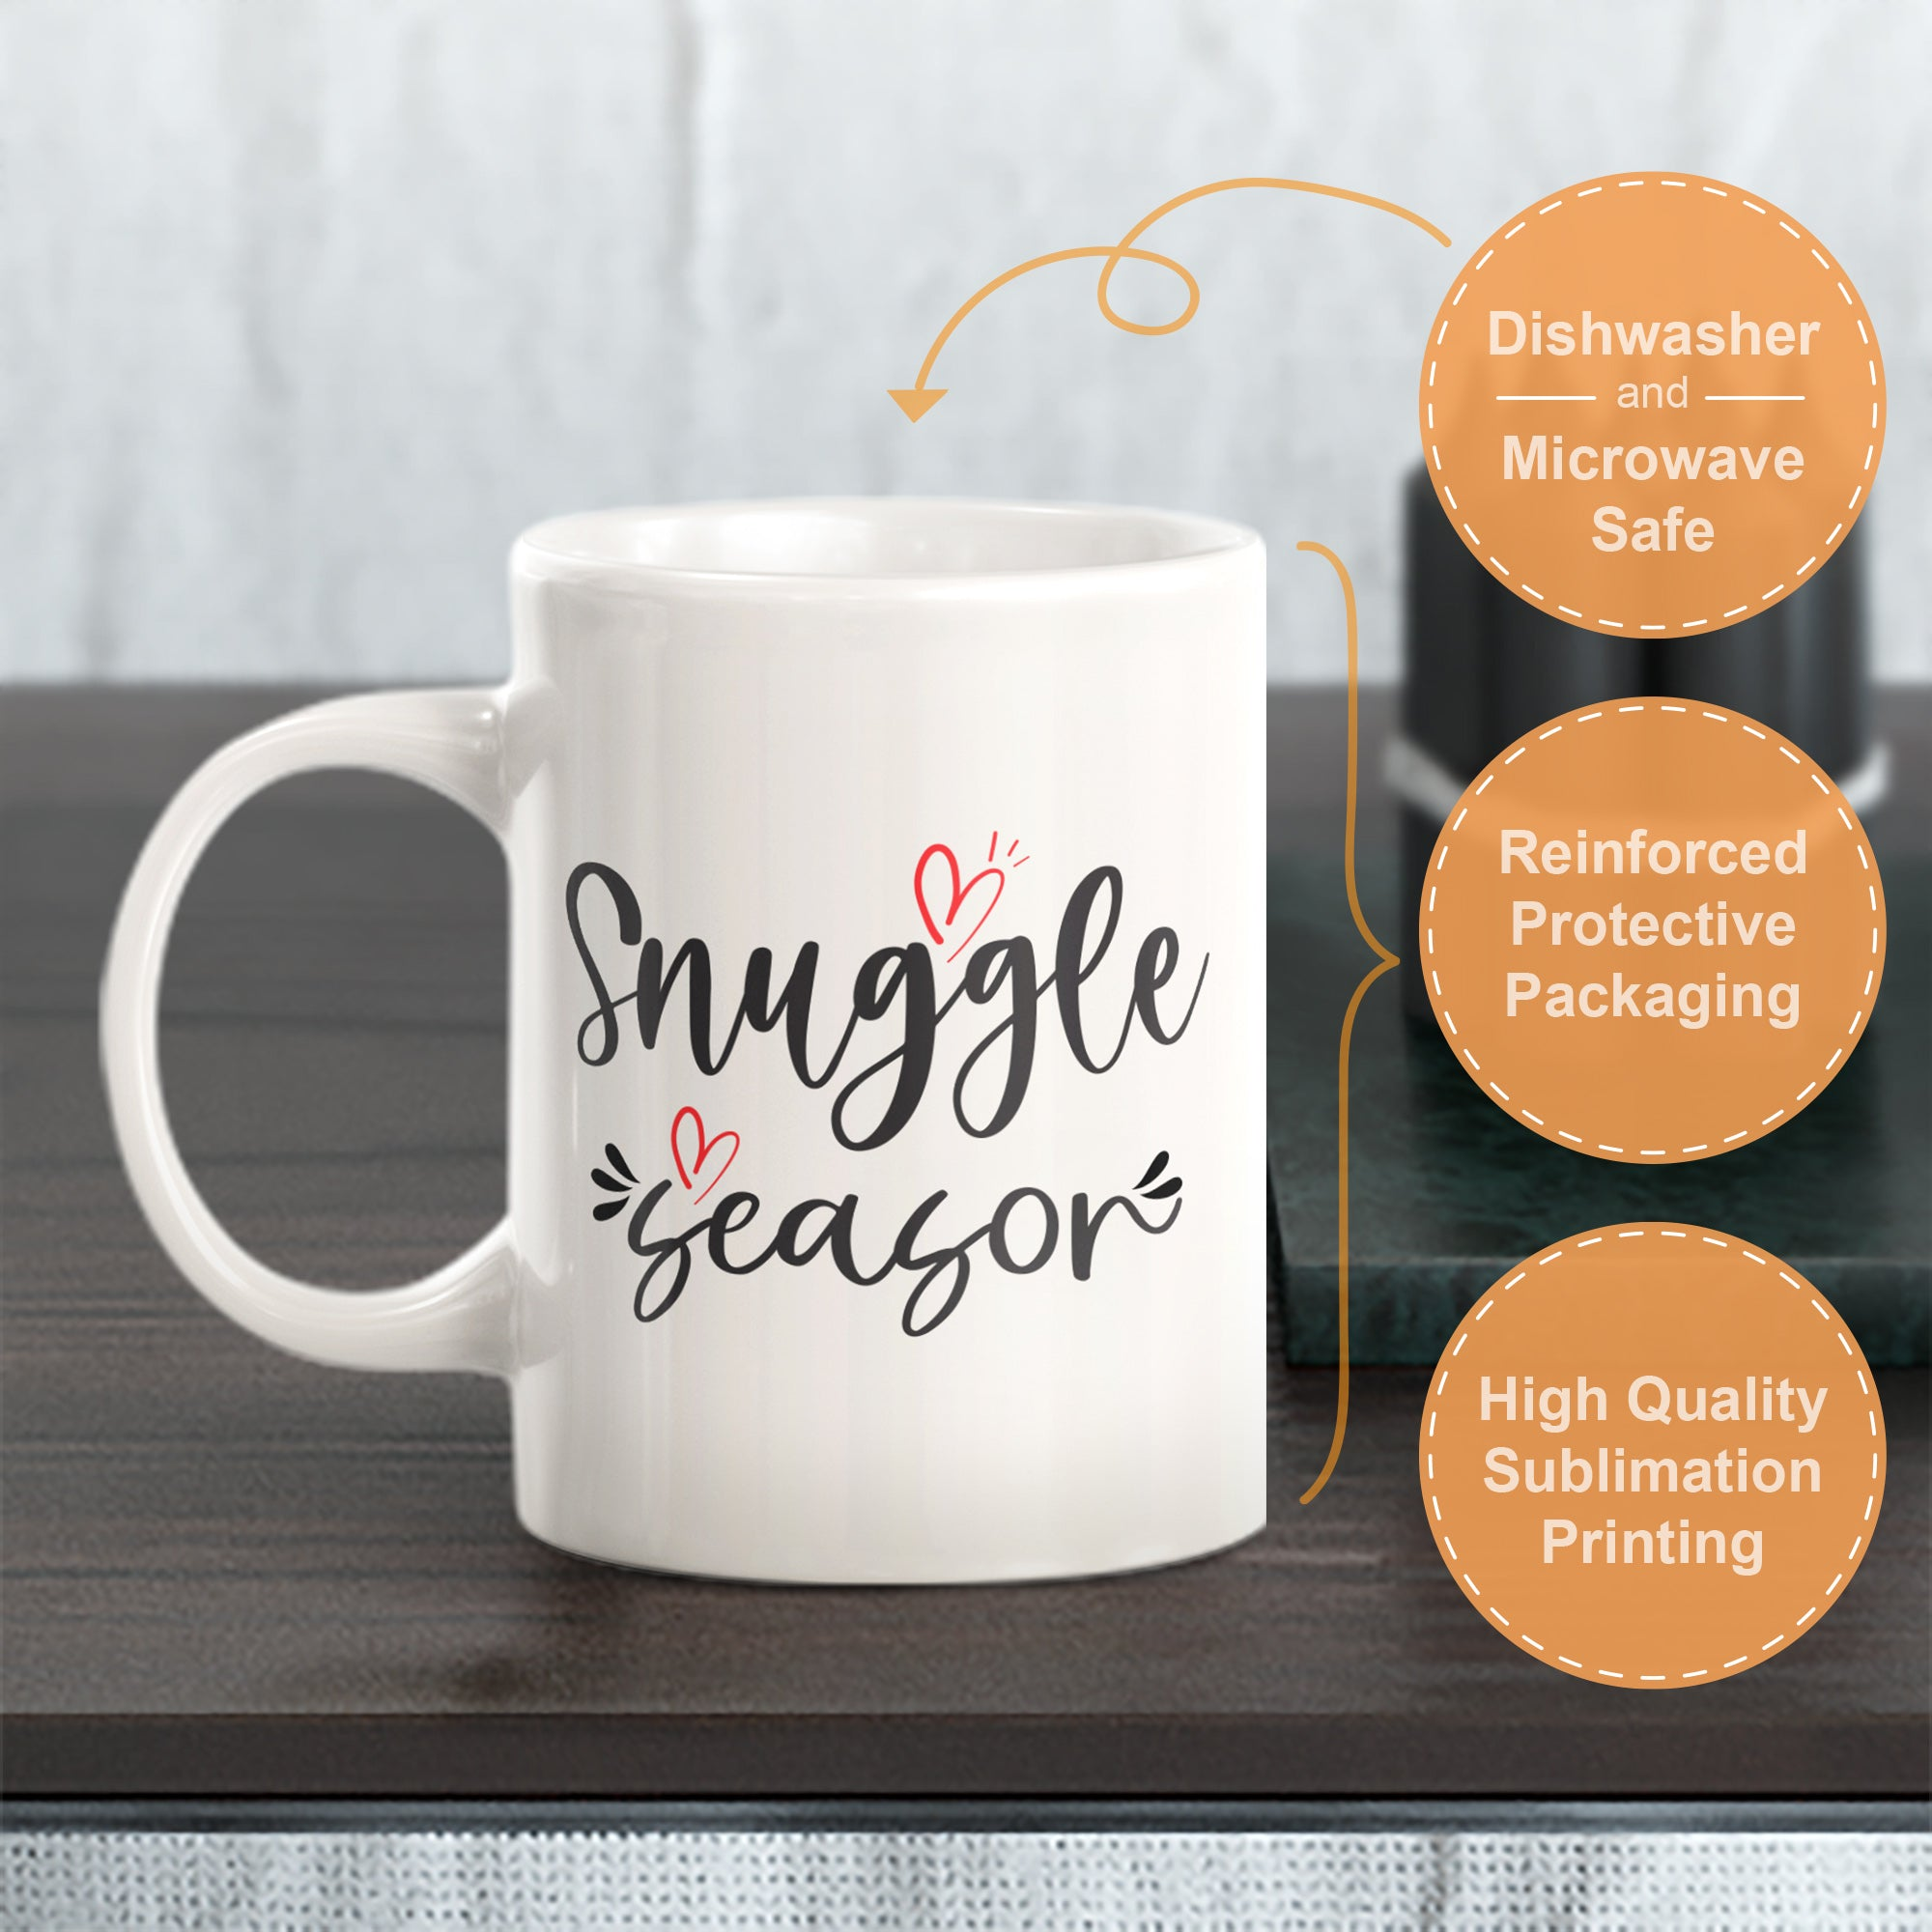 Snuggle Season Coffee Mug